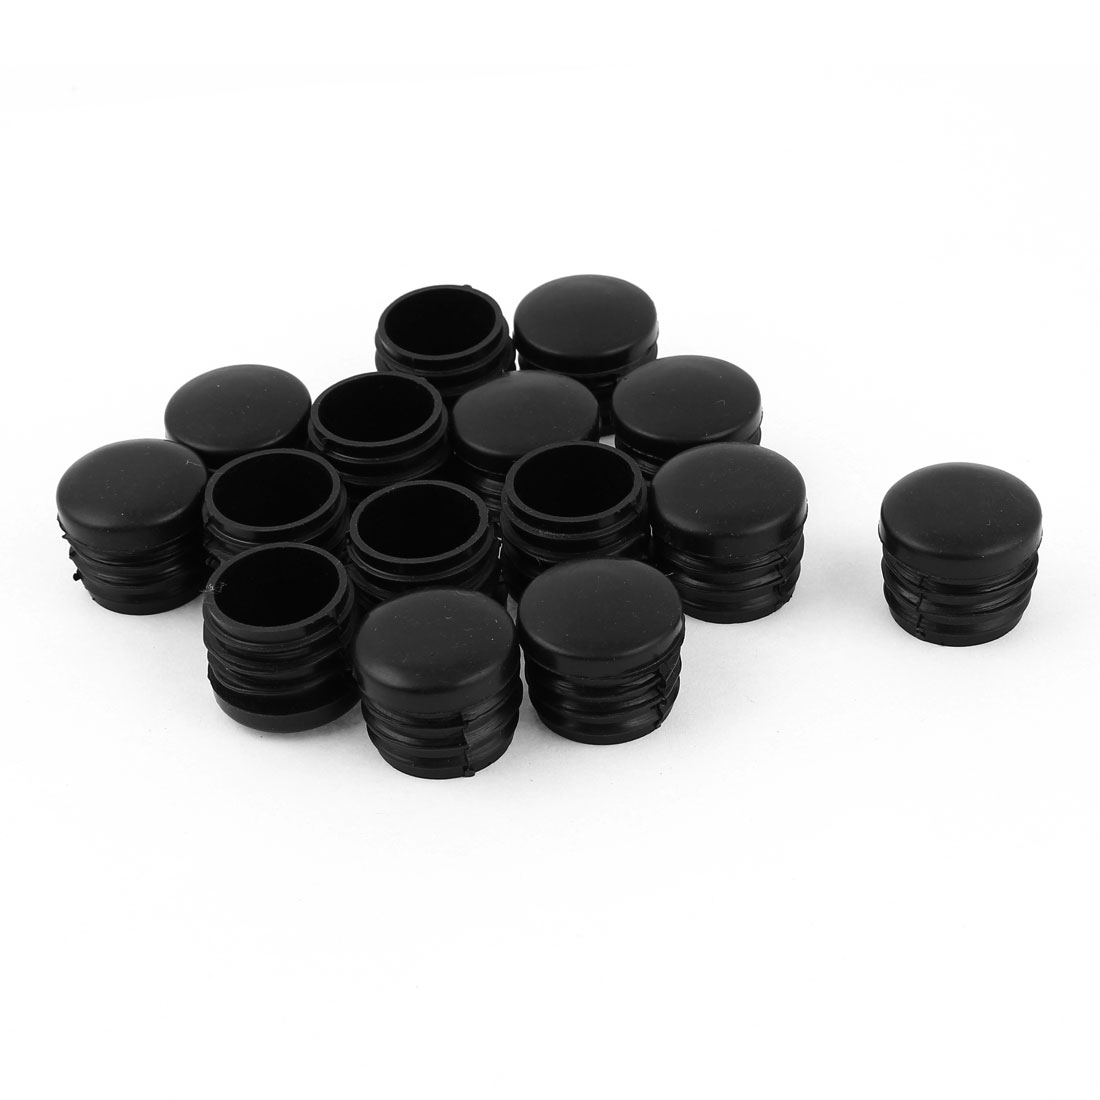 "15 Pcs 25mm 1"" Diameter Black Plastic Blanking End Cap Round Tubing Tube Insert"